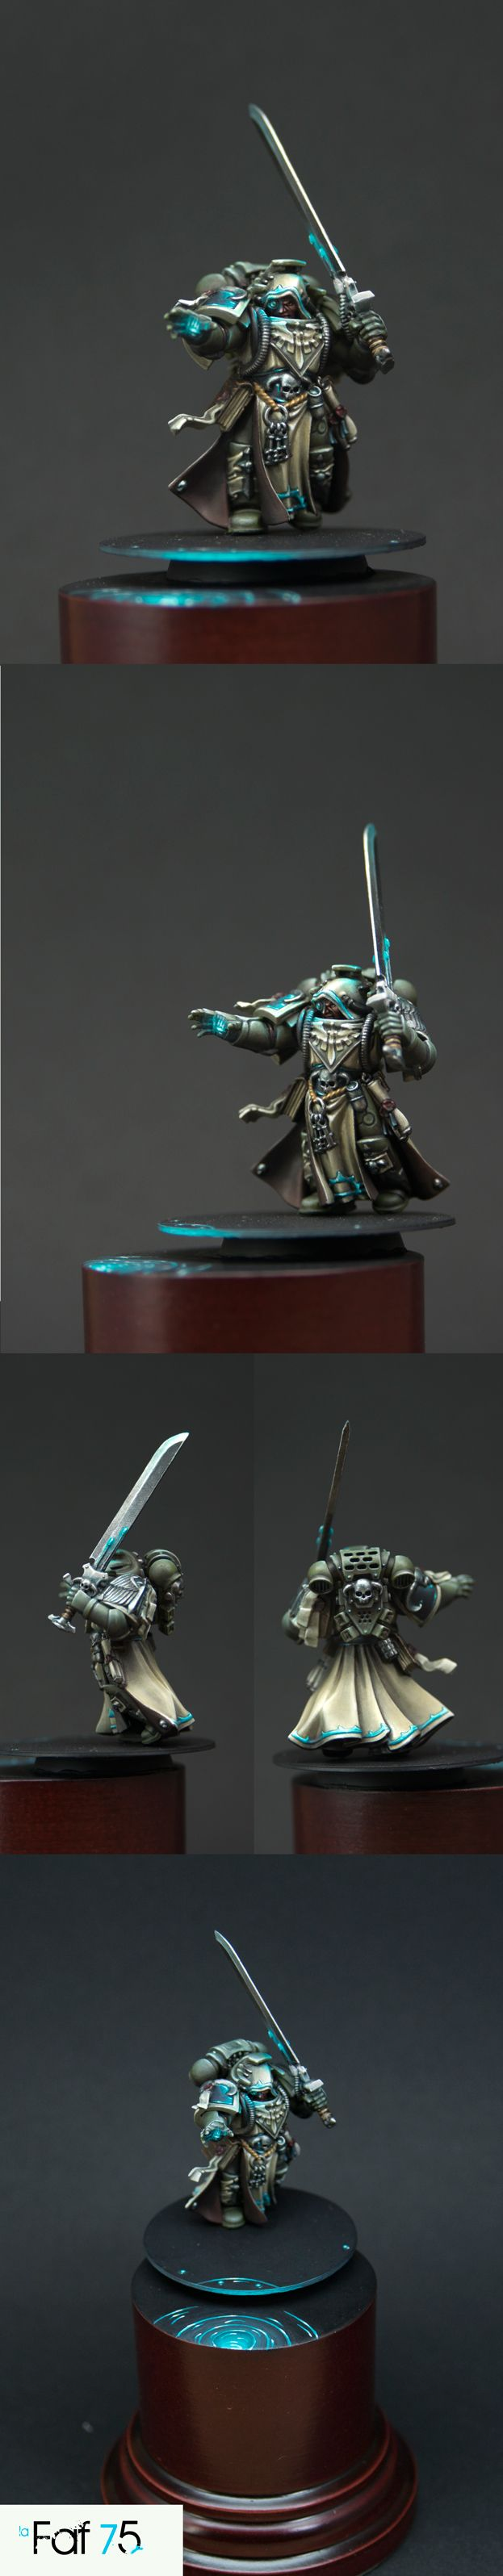 Psyker Dark Angel. The paint job on this is amazing.